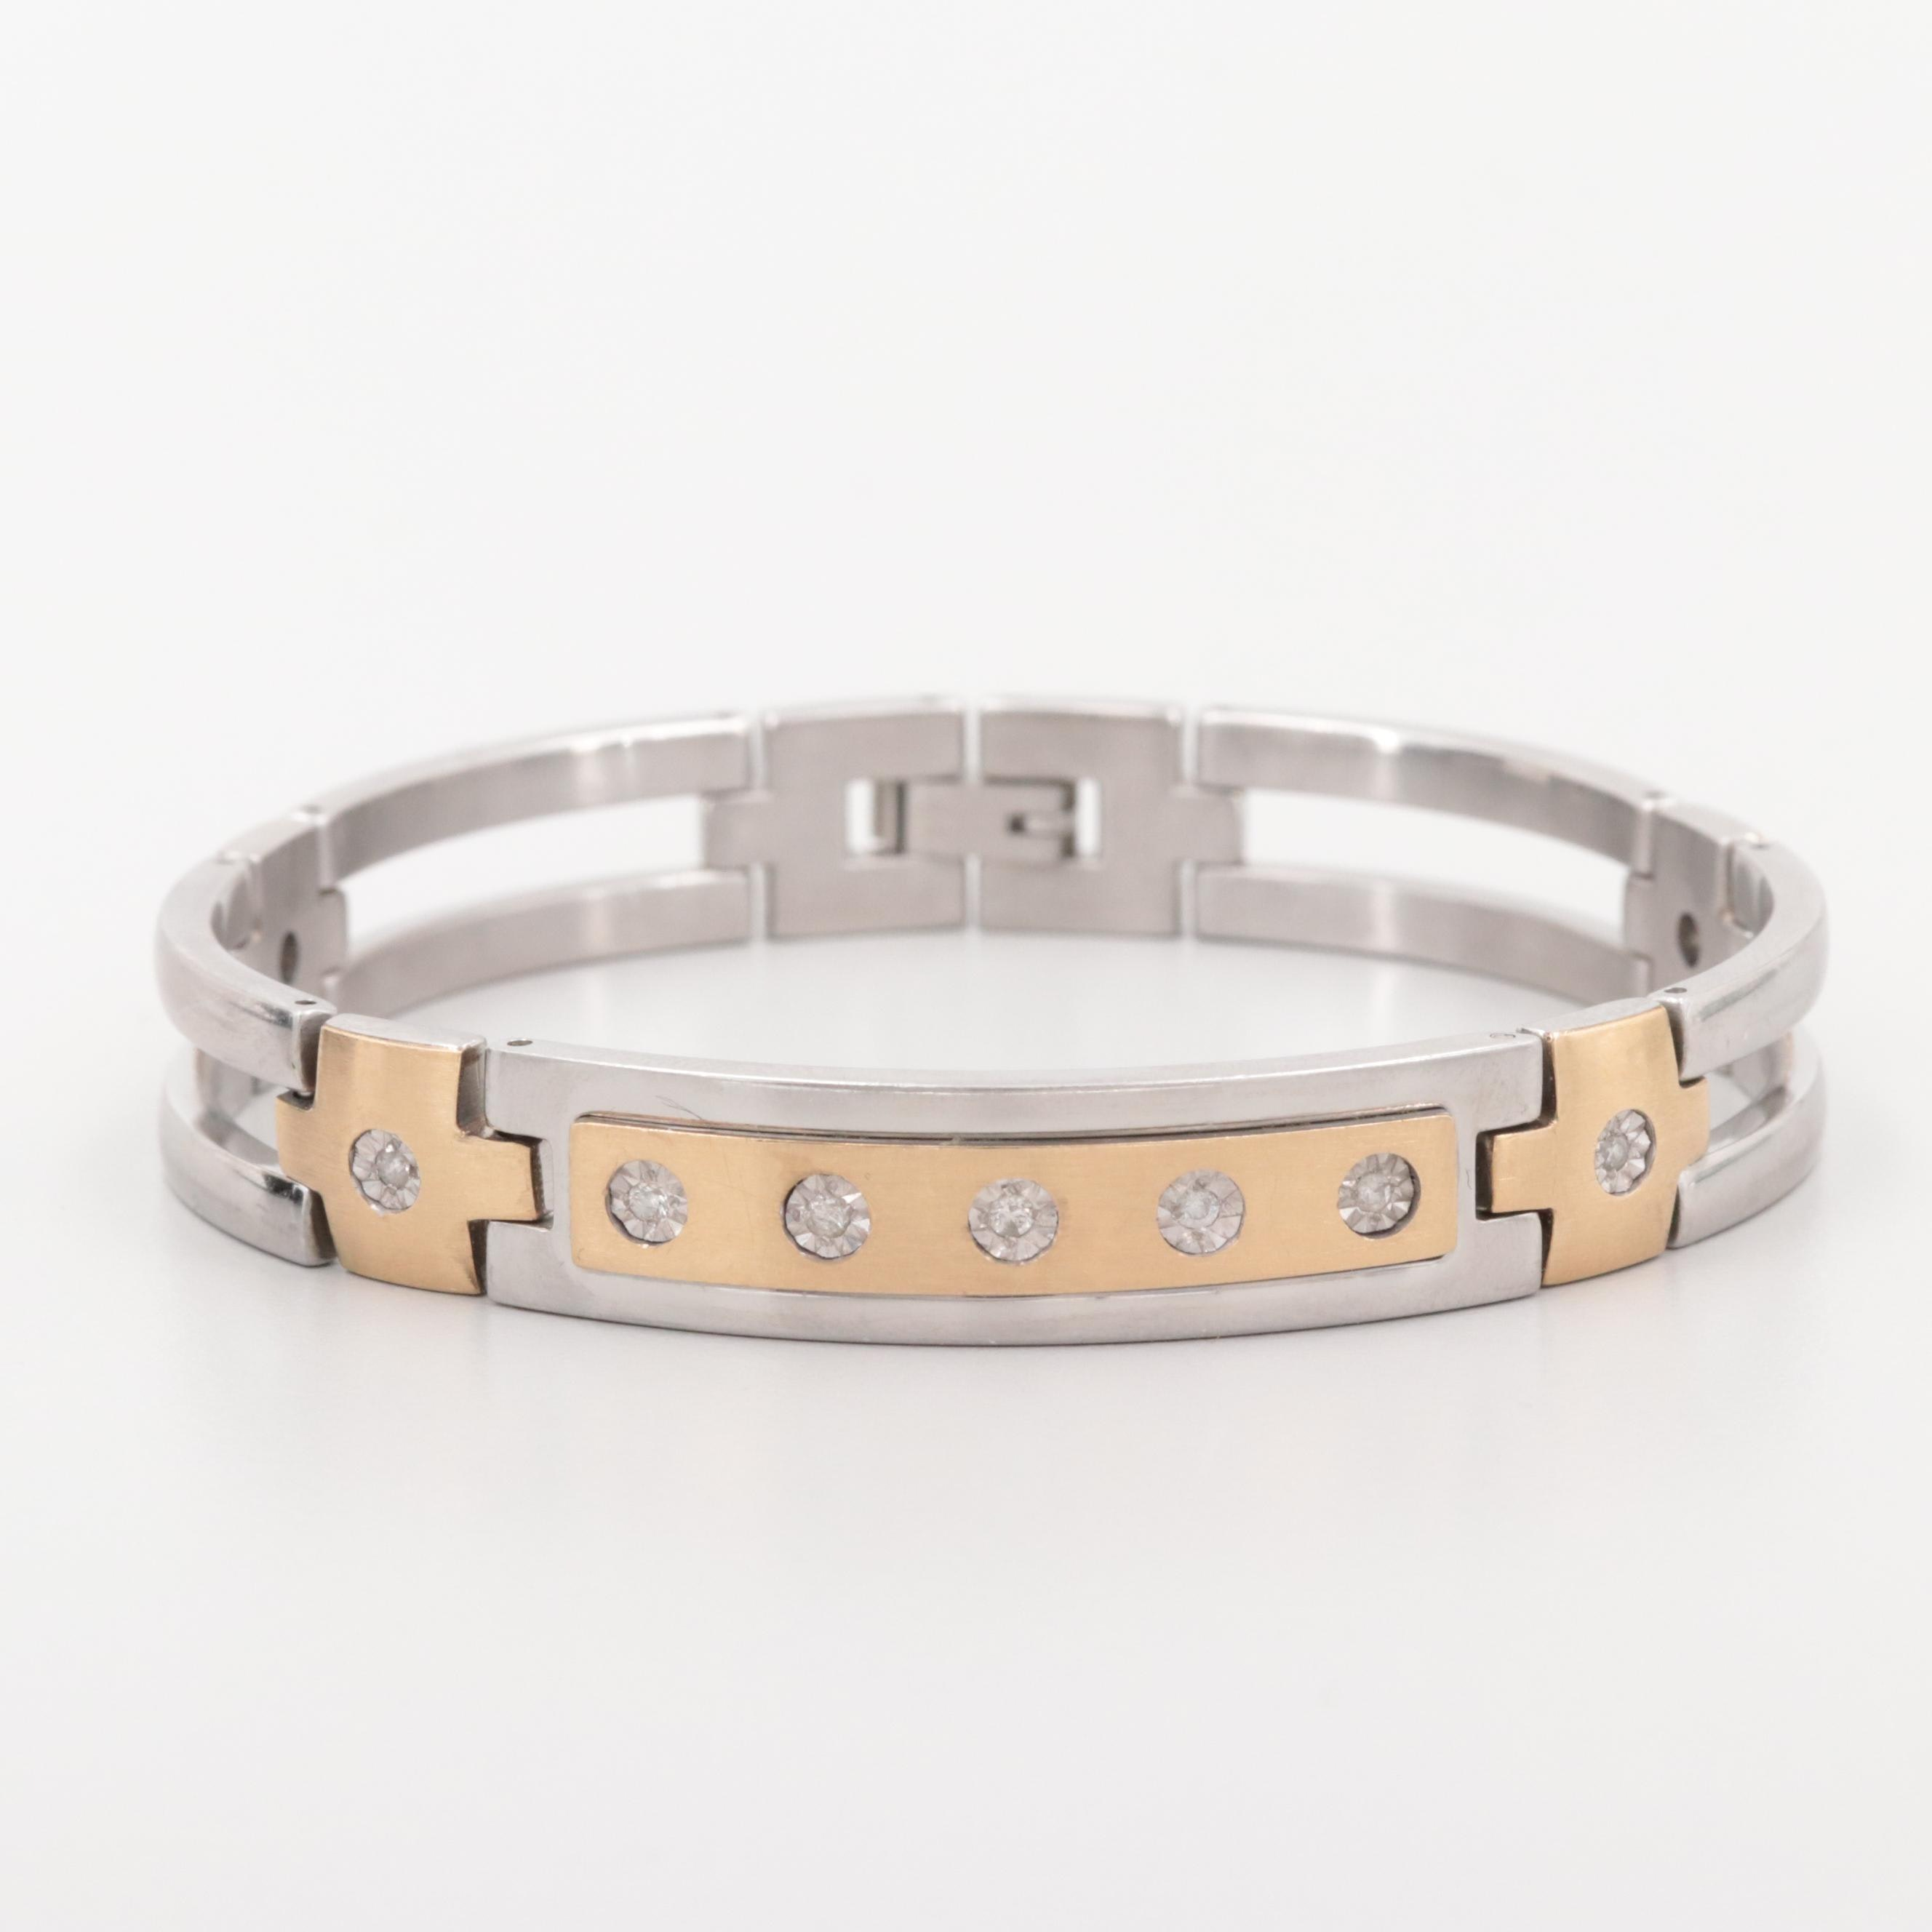 Stainless Steel Diamond Bracelet with 10K Yellow Gold Accents.